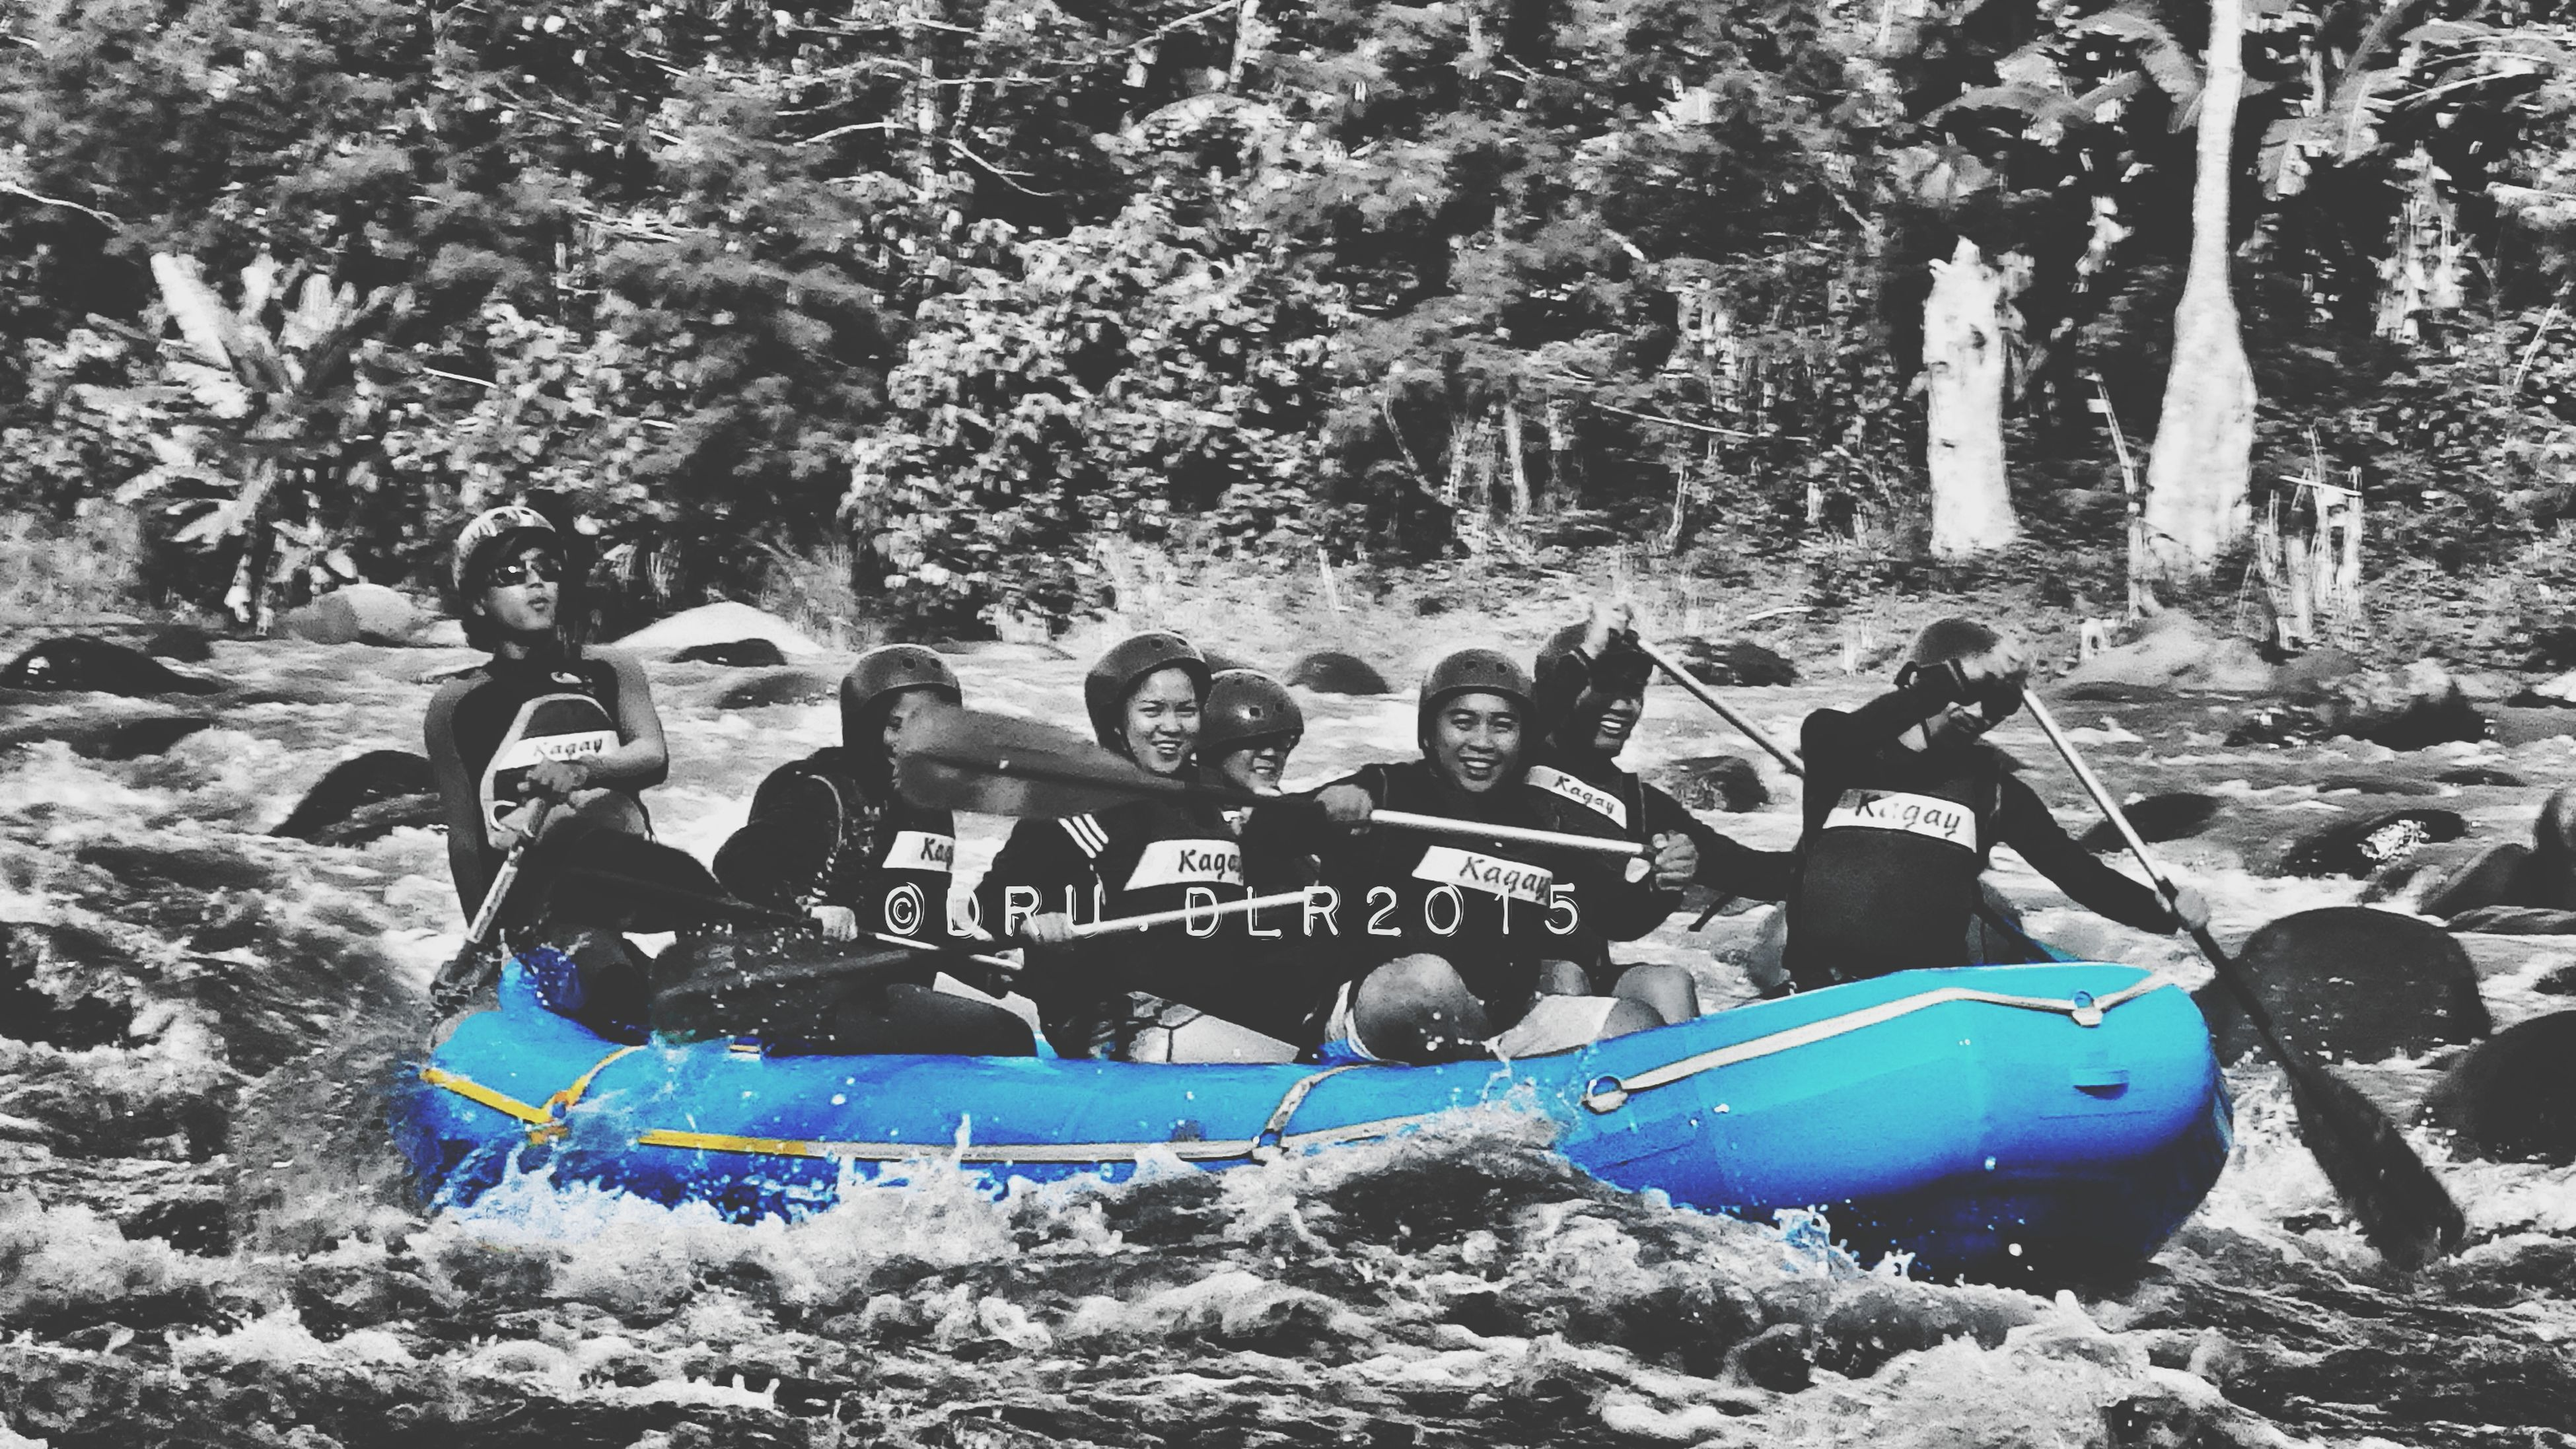 Water rafting @ Cagayan de Oro Phil, this was taken after the wedding day of our dearly beloved friend Cherry last february 2015. Otap, Tine, Cherry and Tim should be here!! Eyeem Philippines Life In Motion Water Adventure Reminiscing